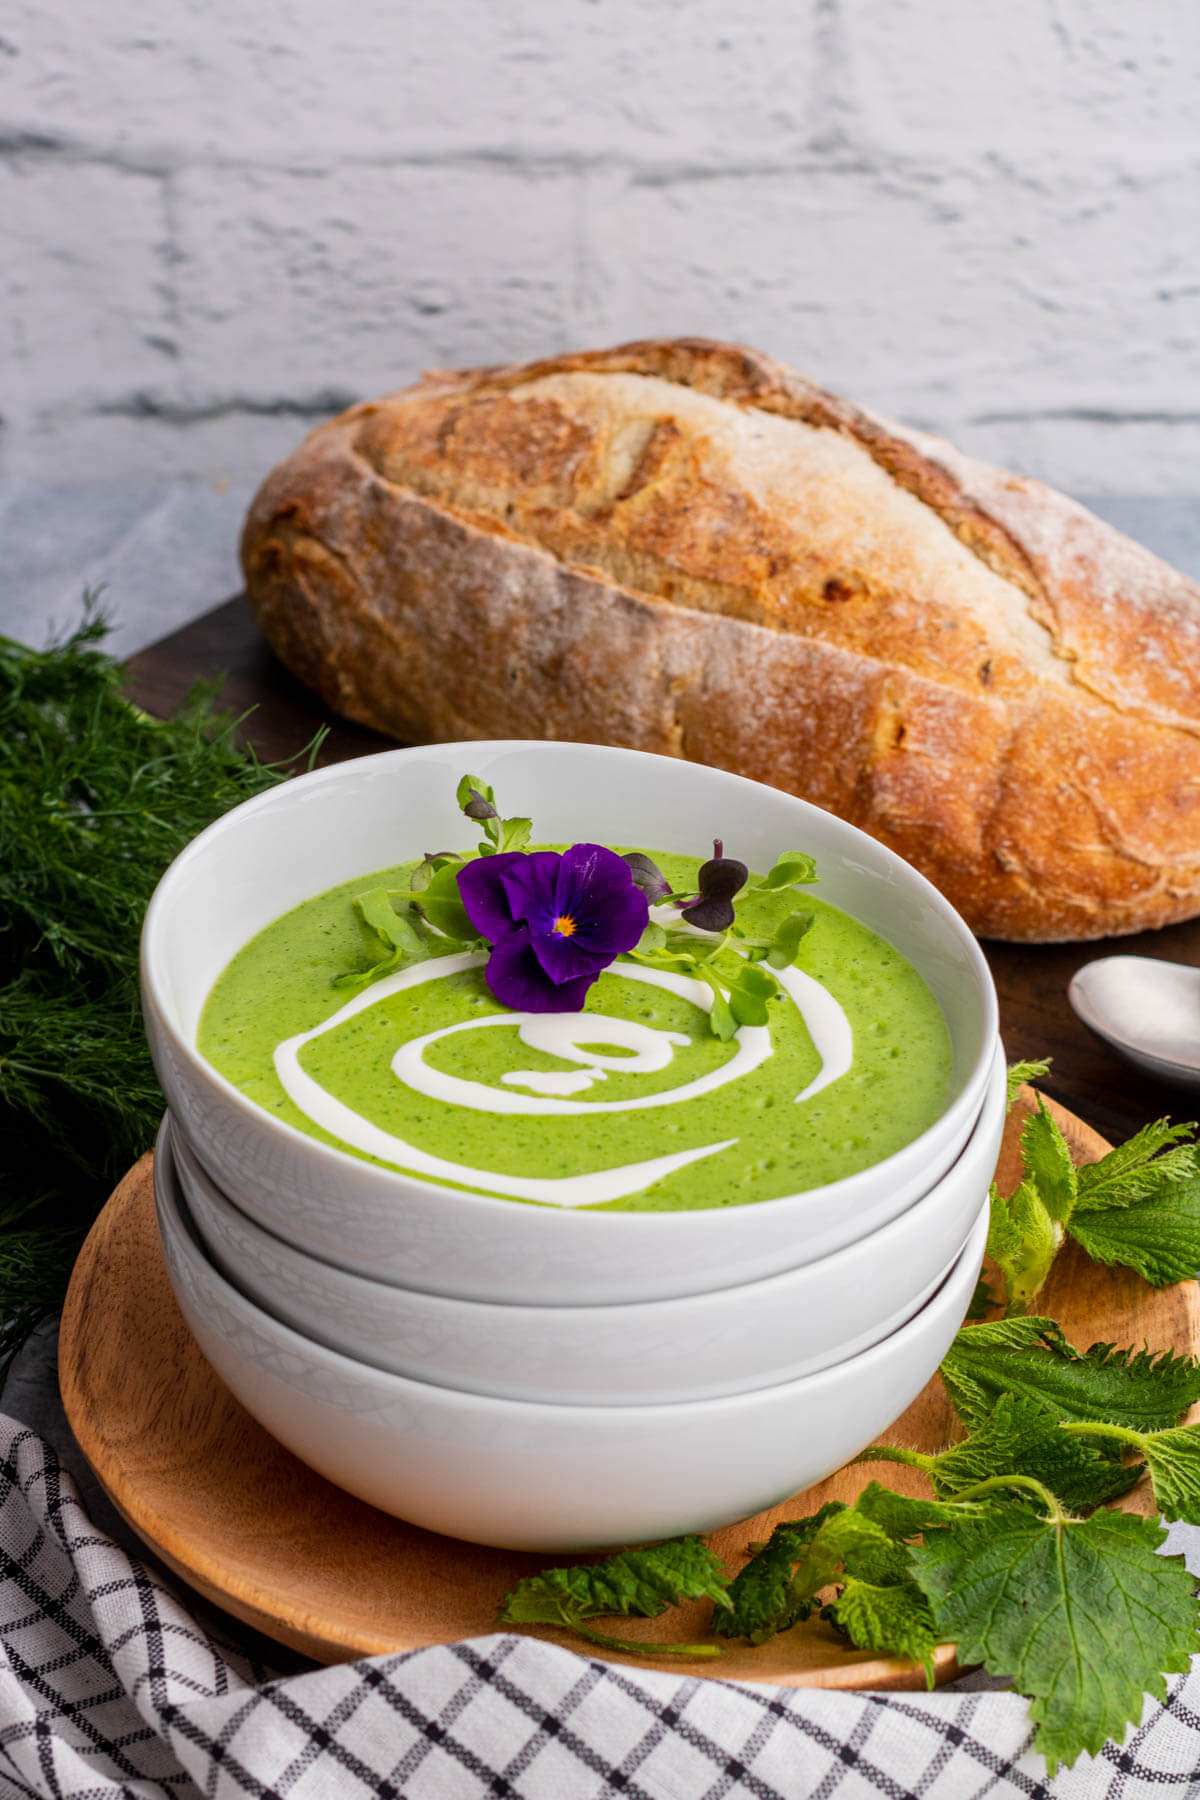 A stack of white bowl with the top containing bright green Nettle Soup garnished with microgreens and edible flowers.